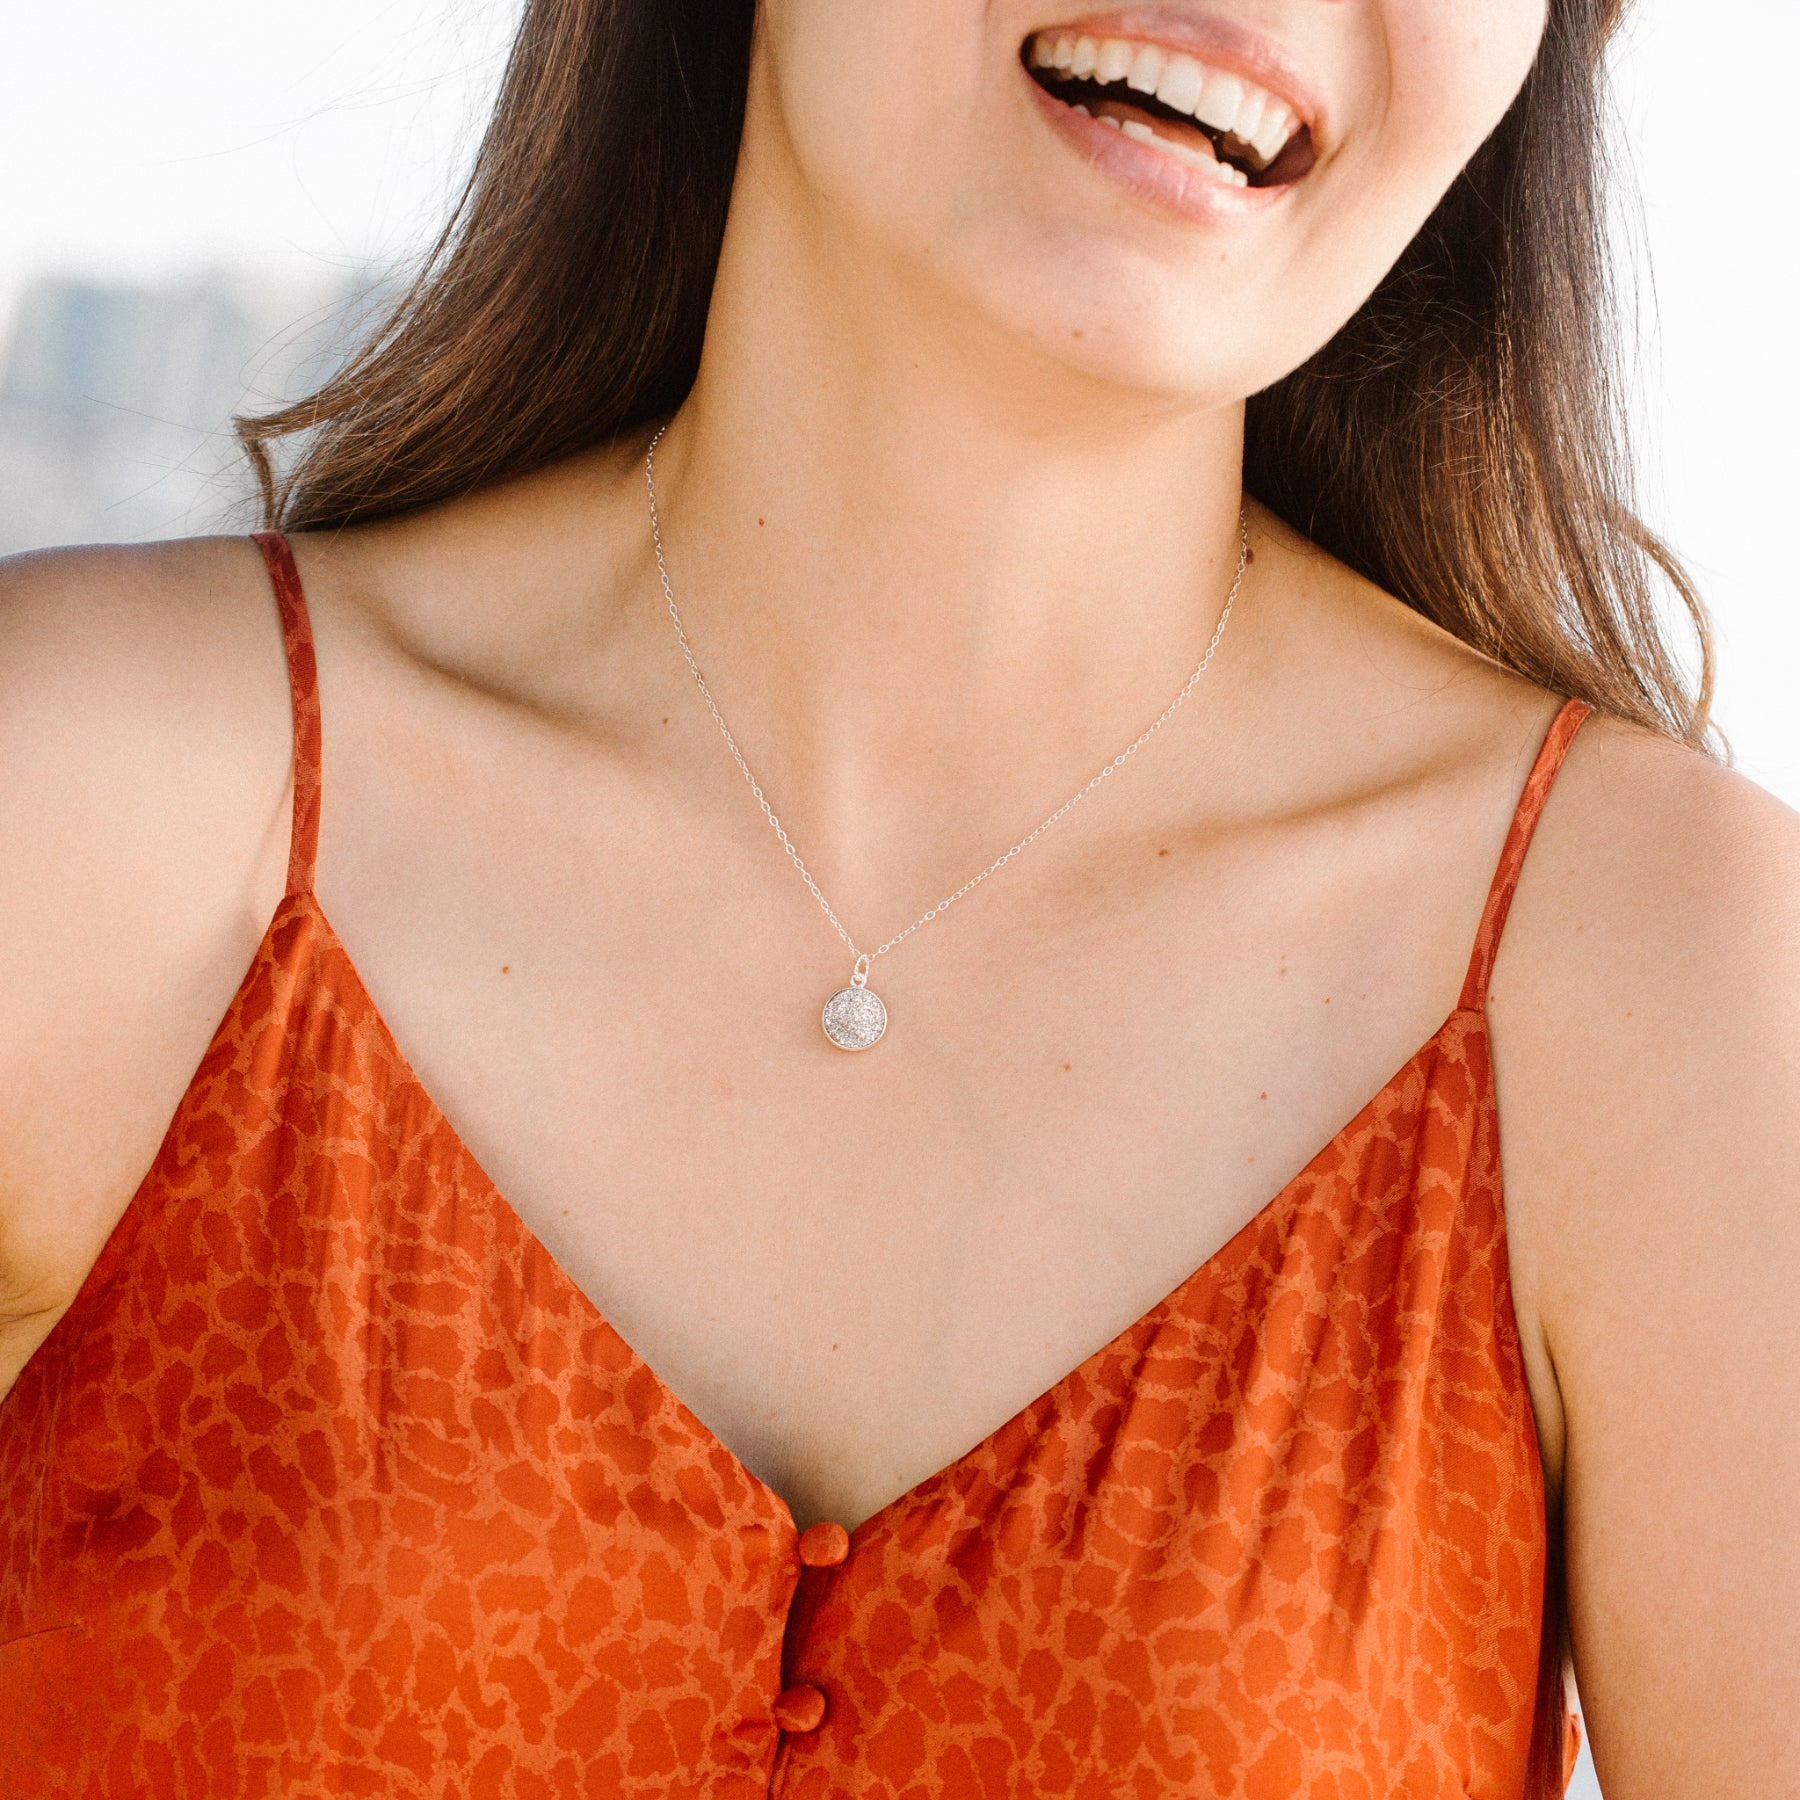 Woman in Orange Shirt Smiling and Wearing Circular Silver Druzy and Silver Necklace 'I Am Happy' Model Photo by Asha Blooms